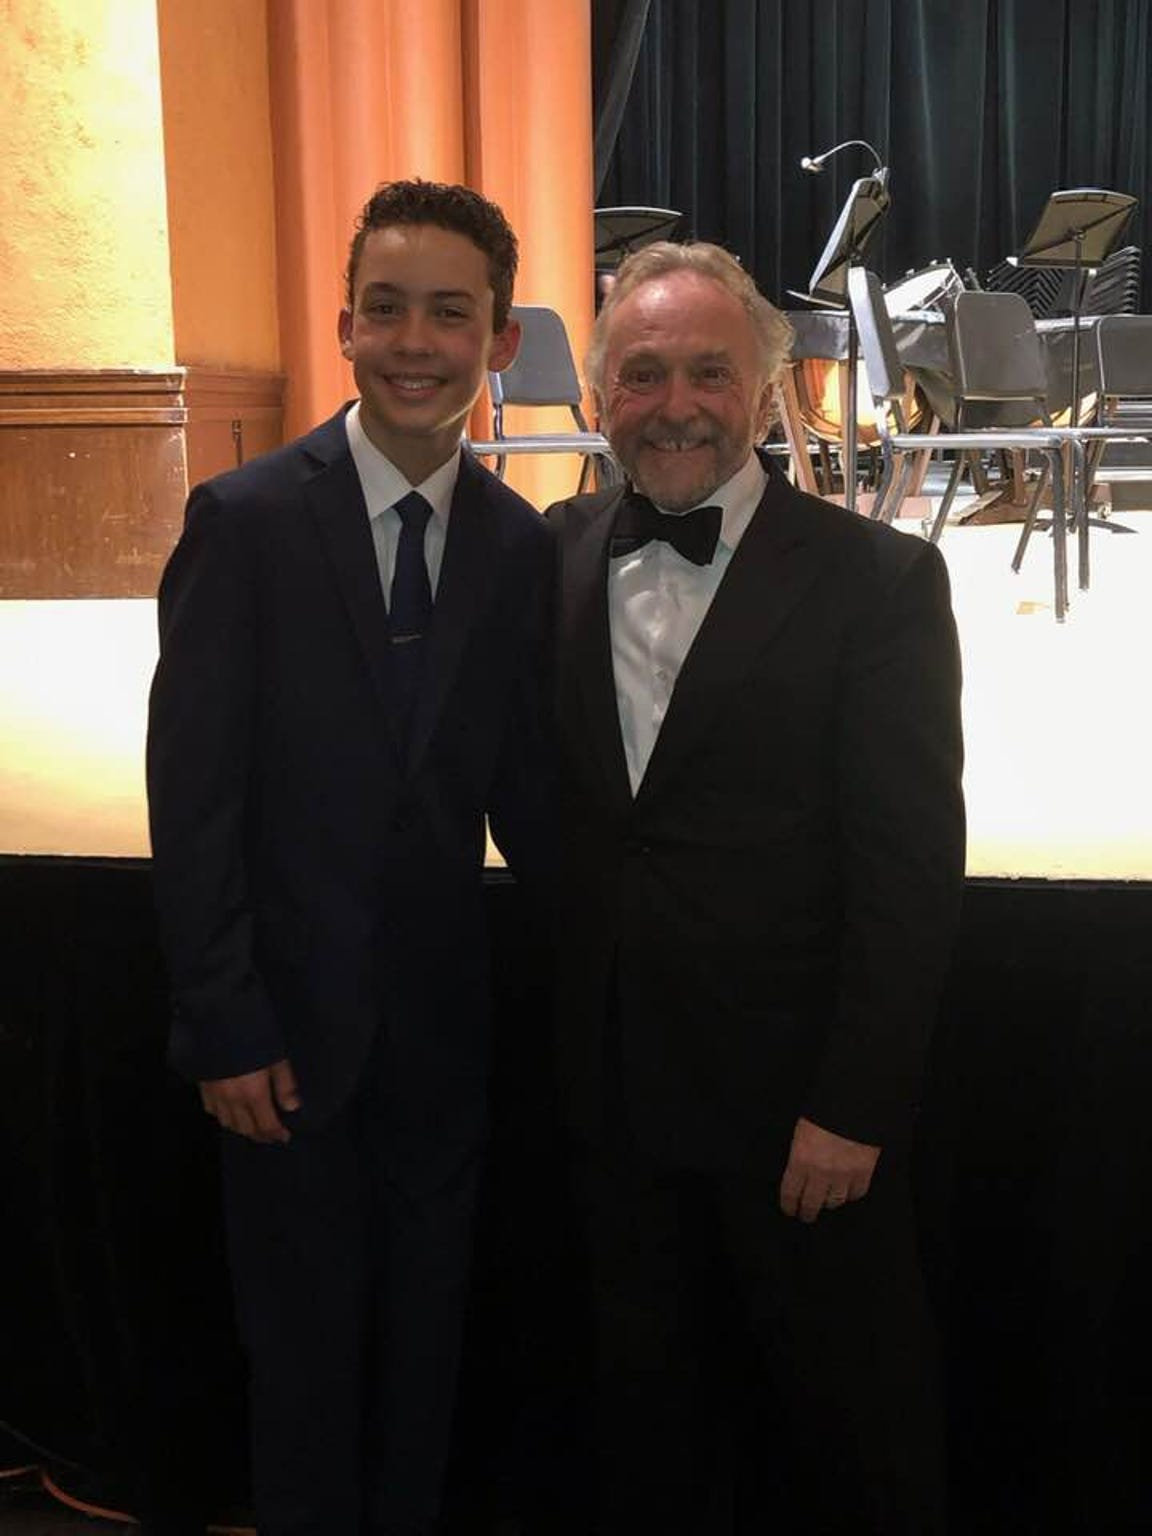 Benjamin Hodson with Maestro John Zoltek of the Glacier Symphony